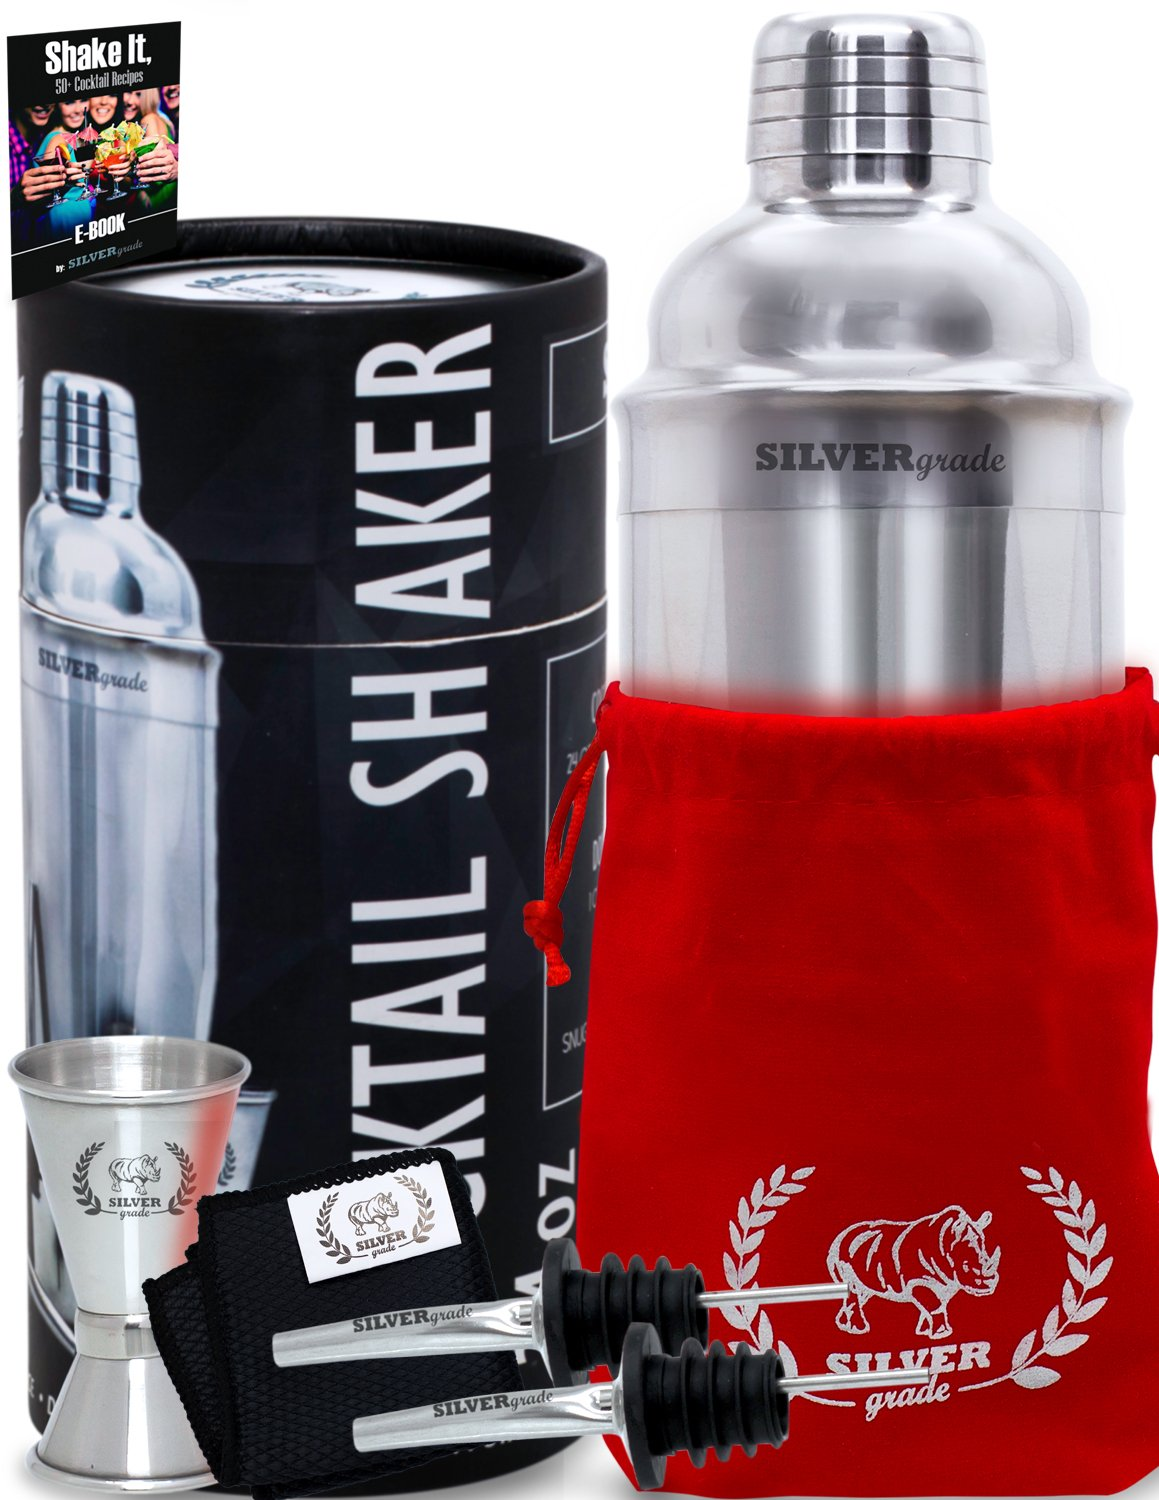 Cocktail Shaker Set - Professional Martini Bartender Kit - 24 Ounce Stainless Steel Shaker with Built-in Strainer and Lid, Double Jigger, 2 Liquor Pourers, 50 Cocktail Recipes eBook - by SILVERgrade